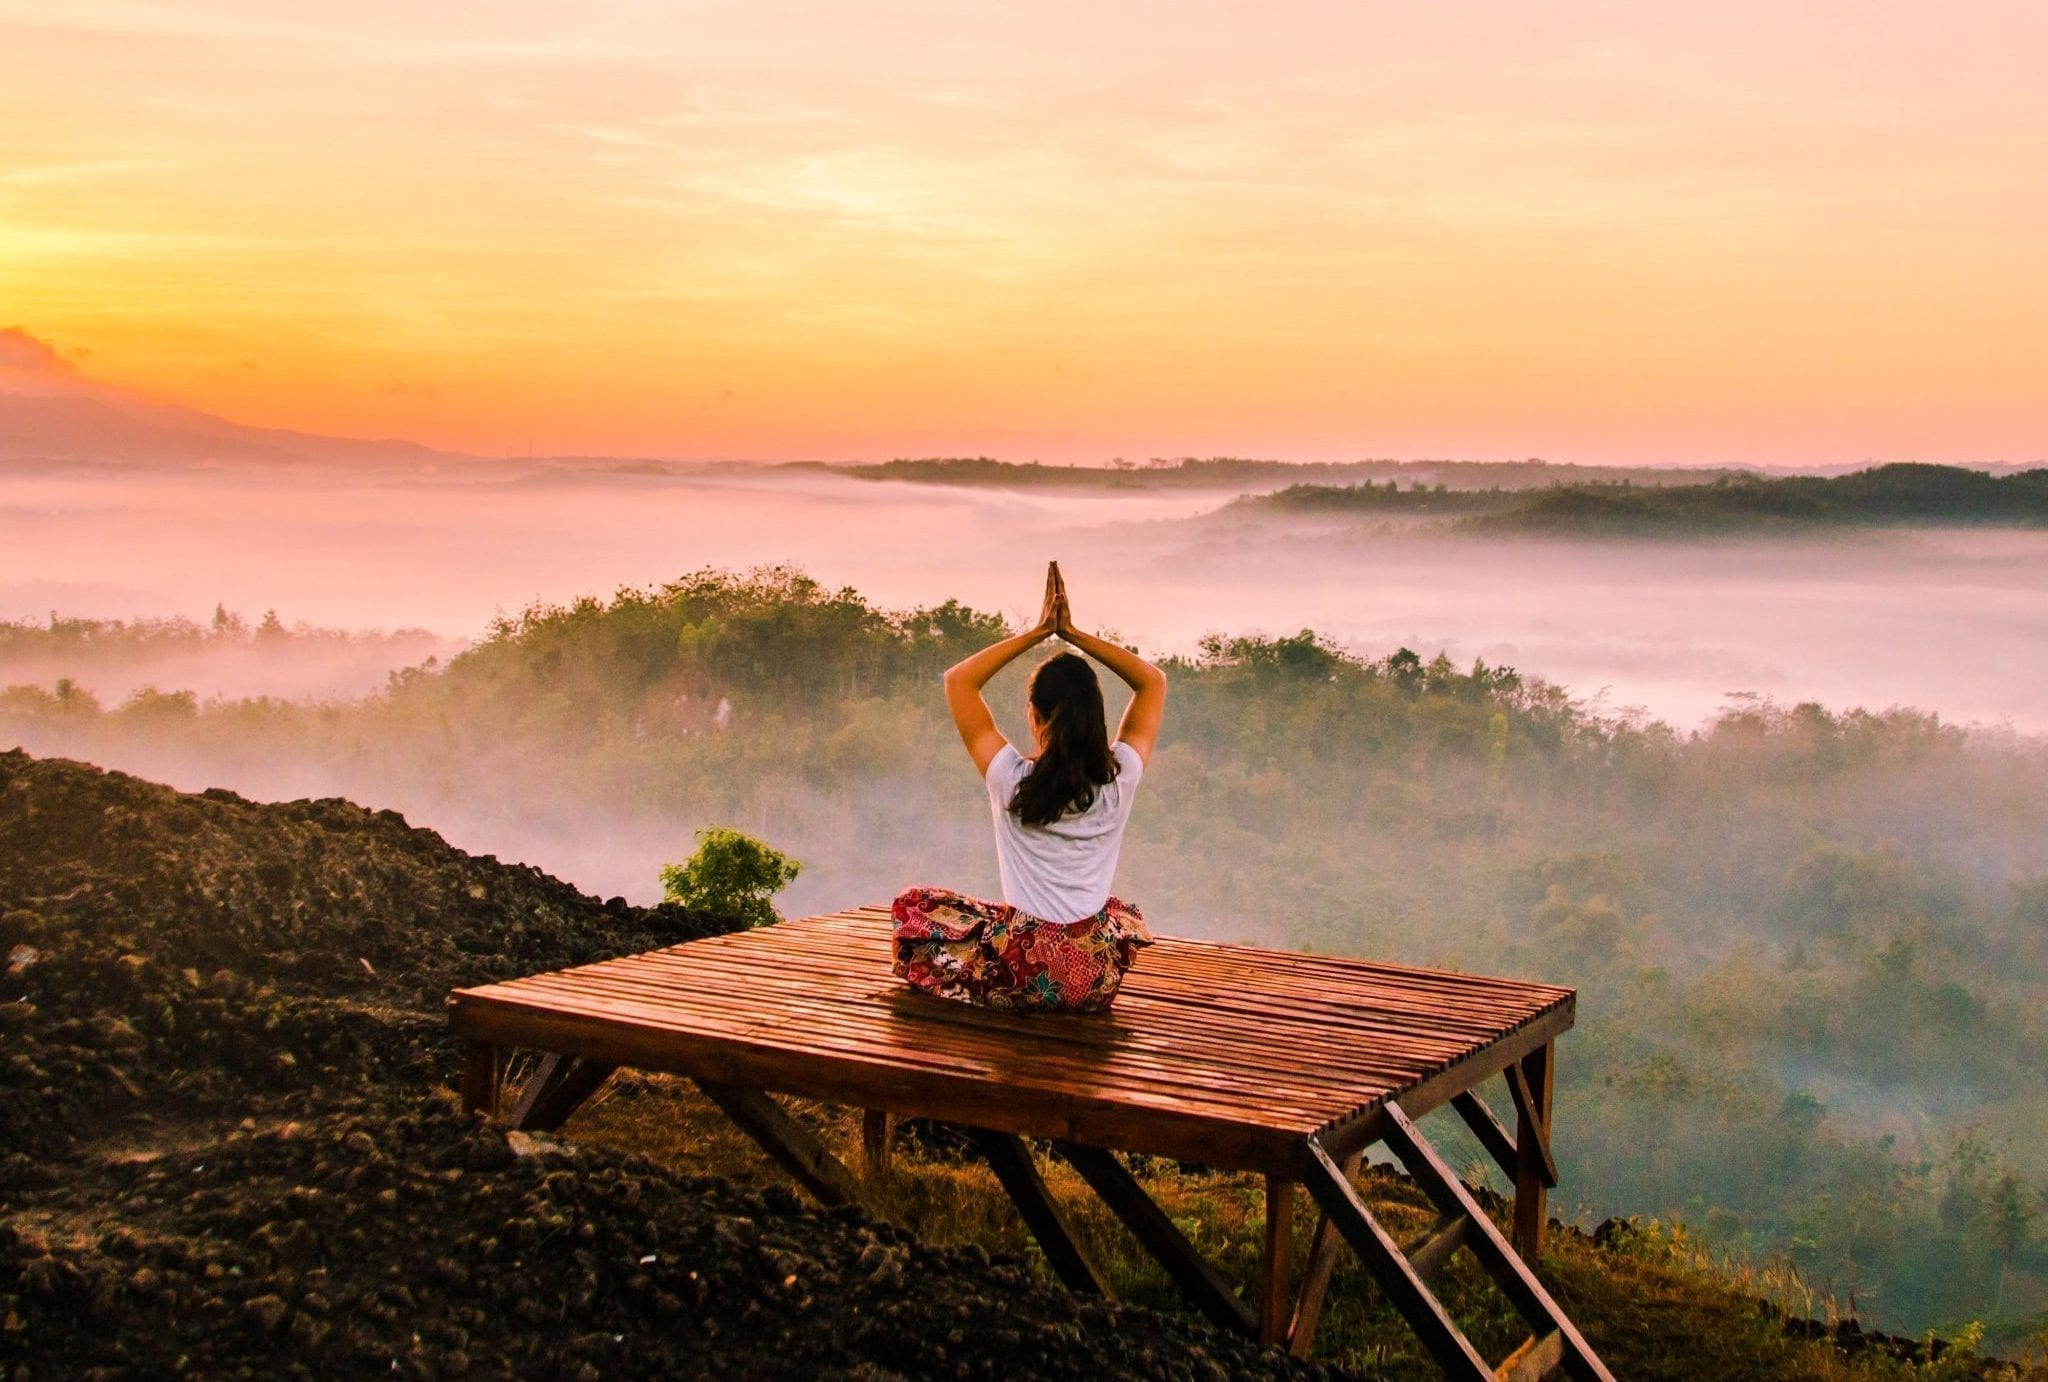 Girl on a wooden bed while meditating in front of a beautiful scenery